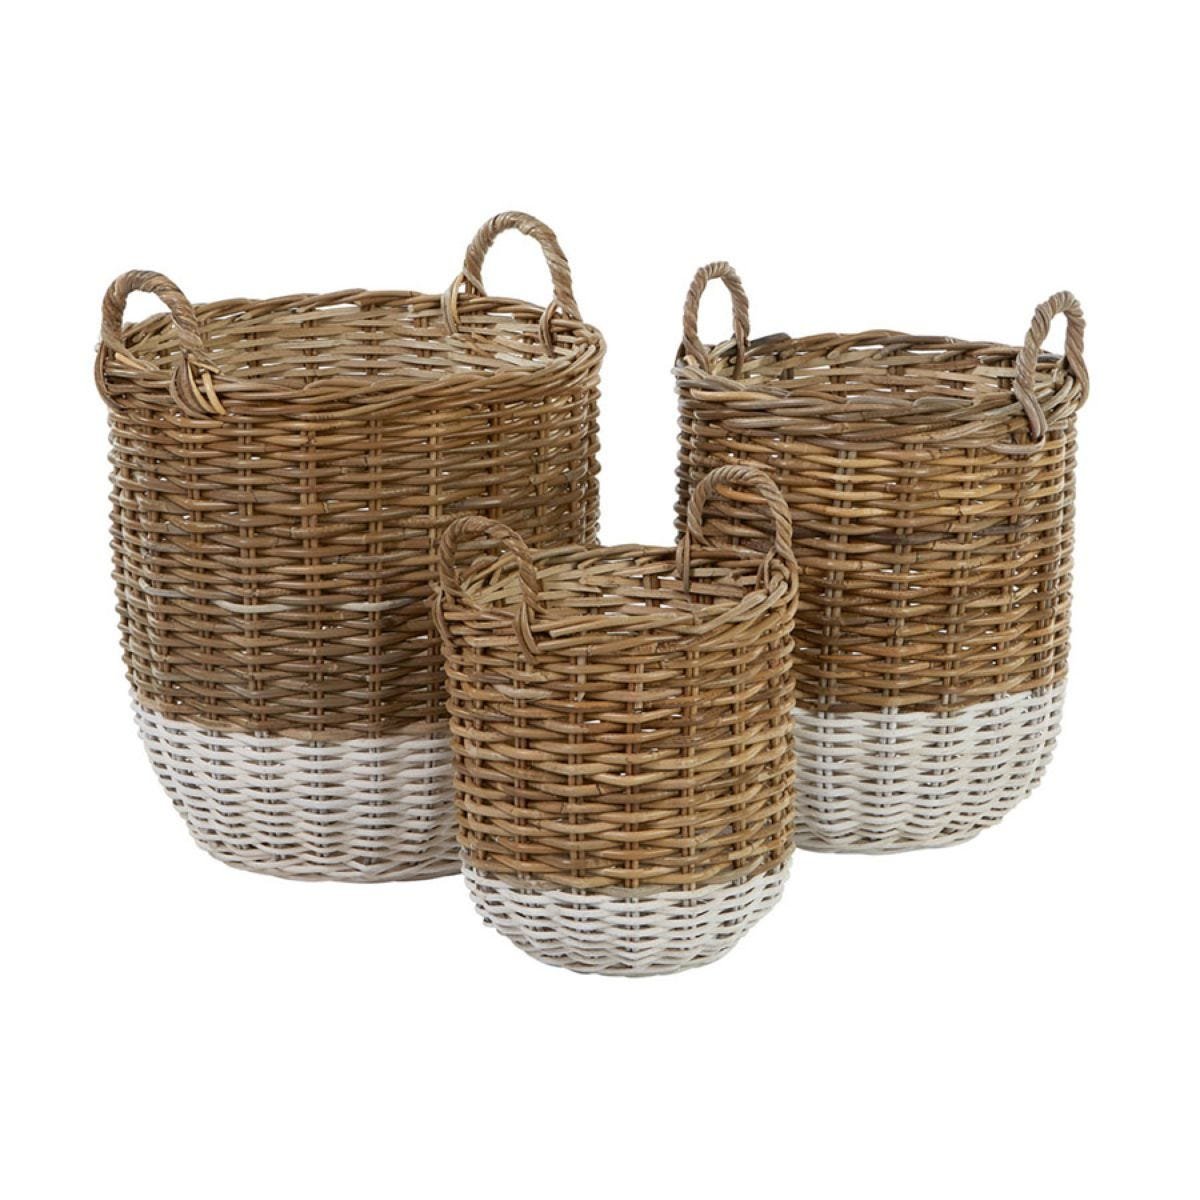 Premier Housewares Hampstead Kubu Rattan Set of 3 Storage Baskets - Grey & White